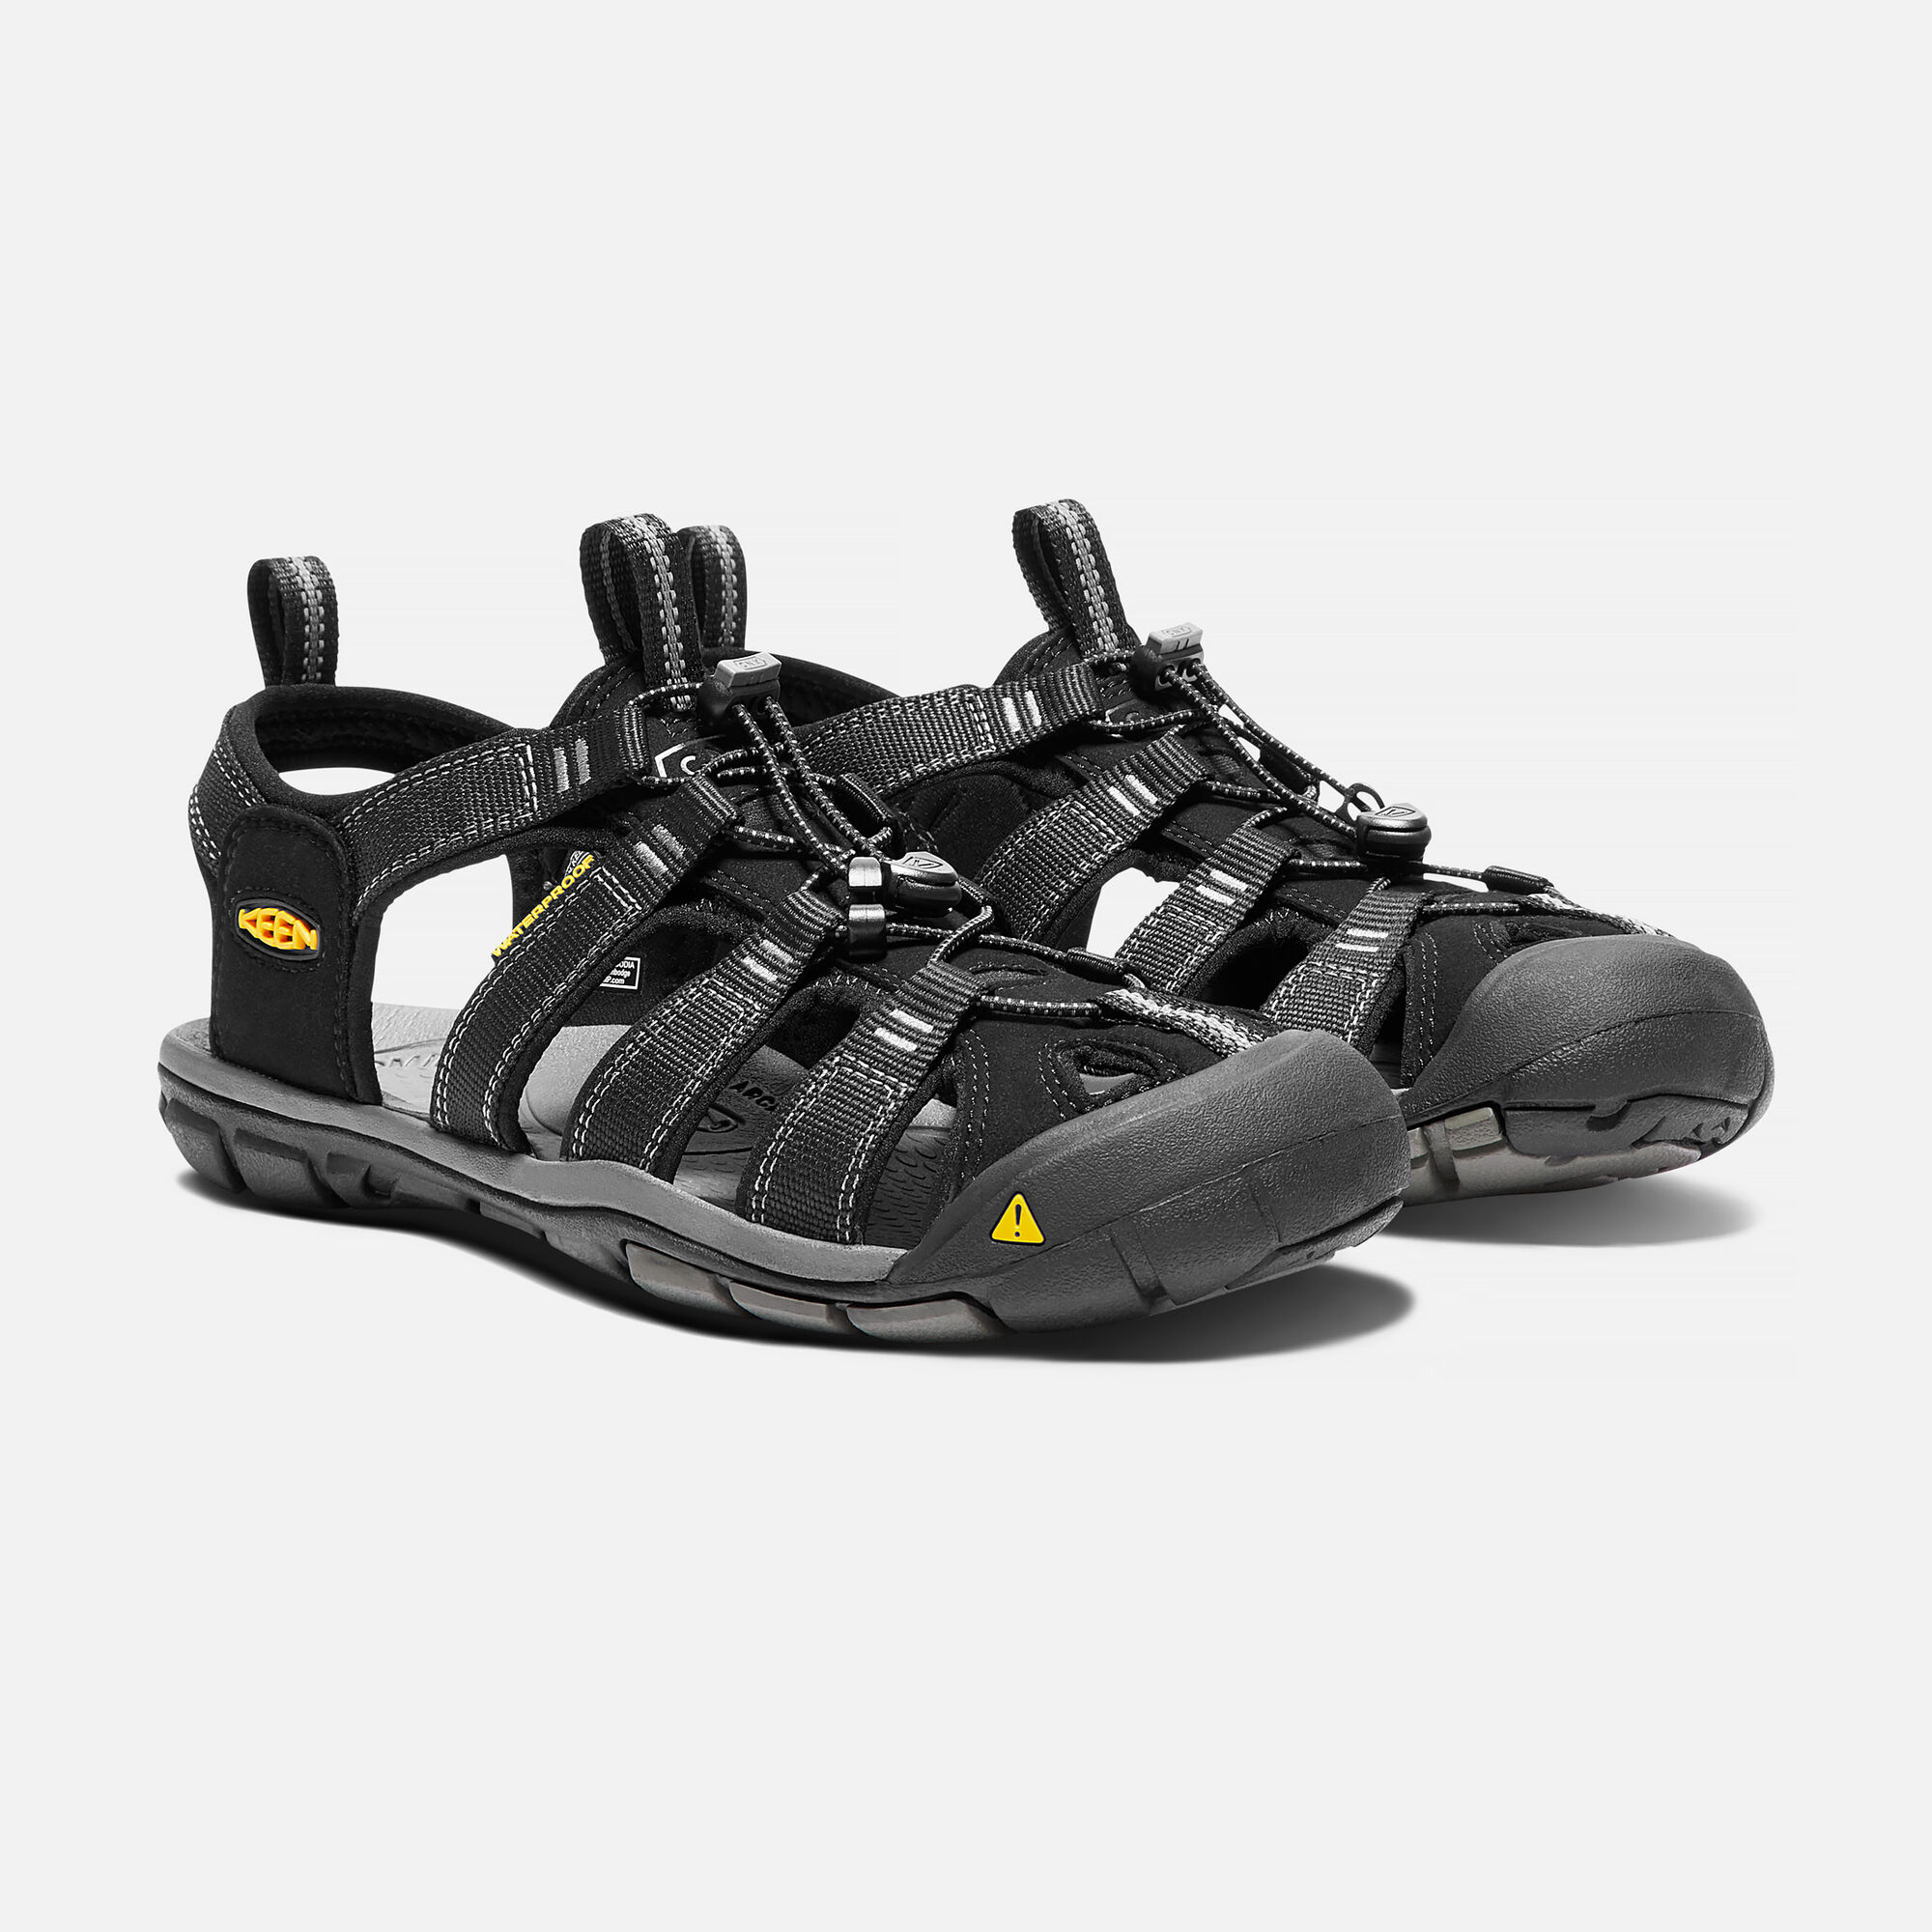 44b0217152363b Men's Clearwater CNX - Hiking Sandals | KEEN Footwear